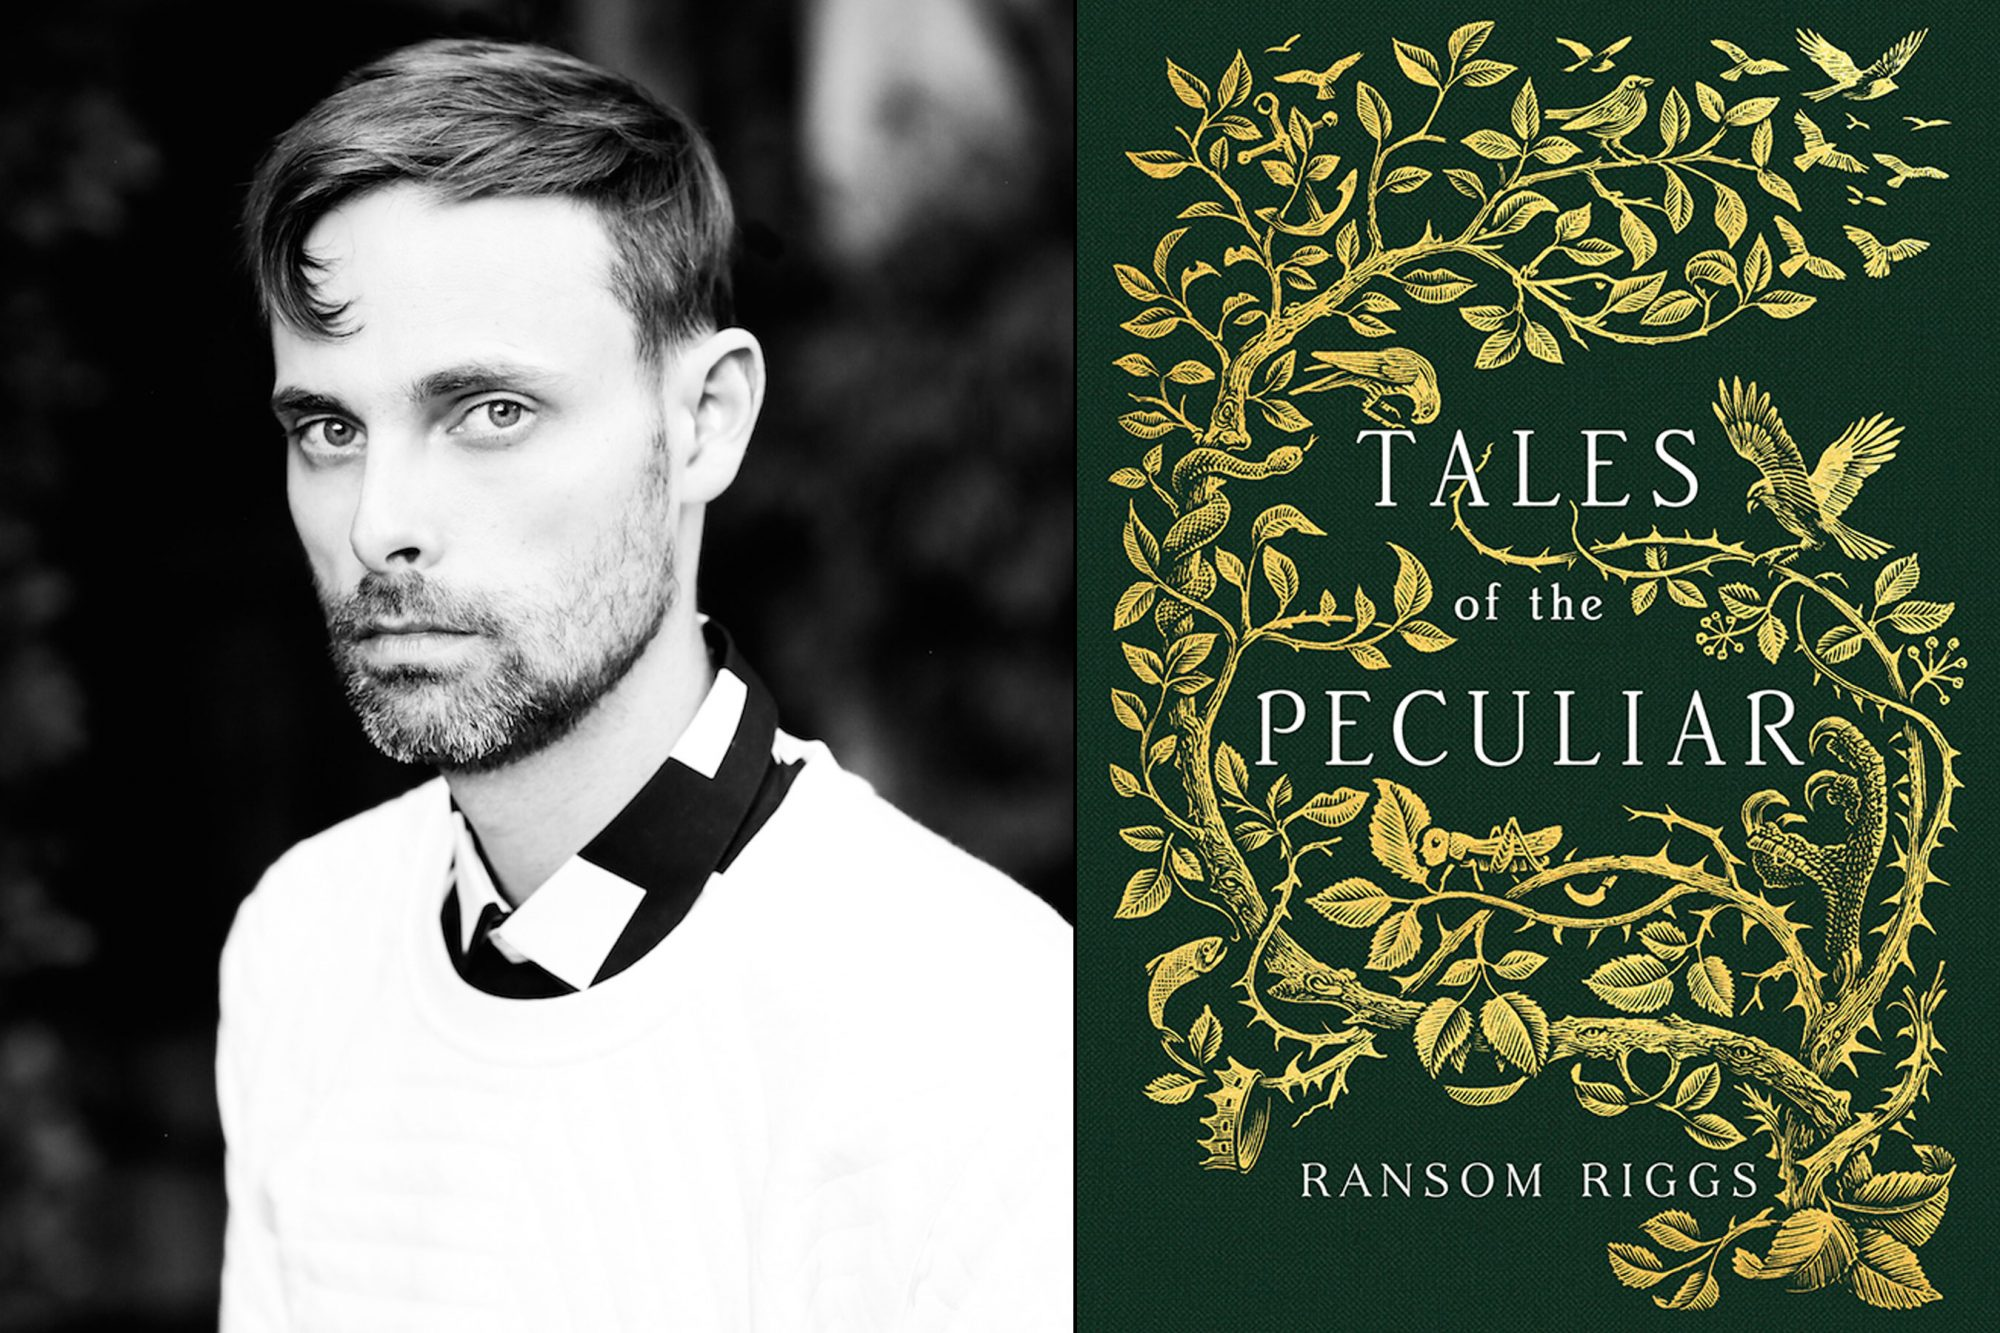 Ransom Riggs/ Tales of the Peculiar